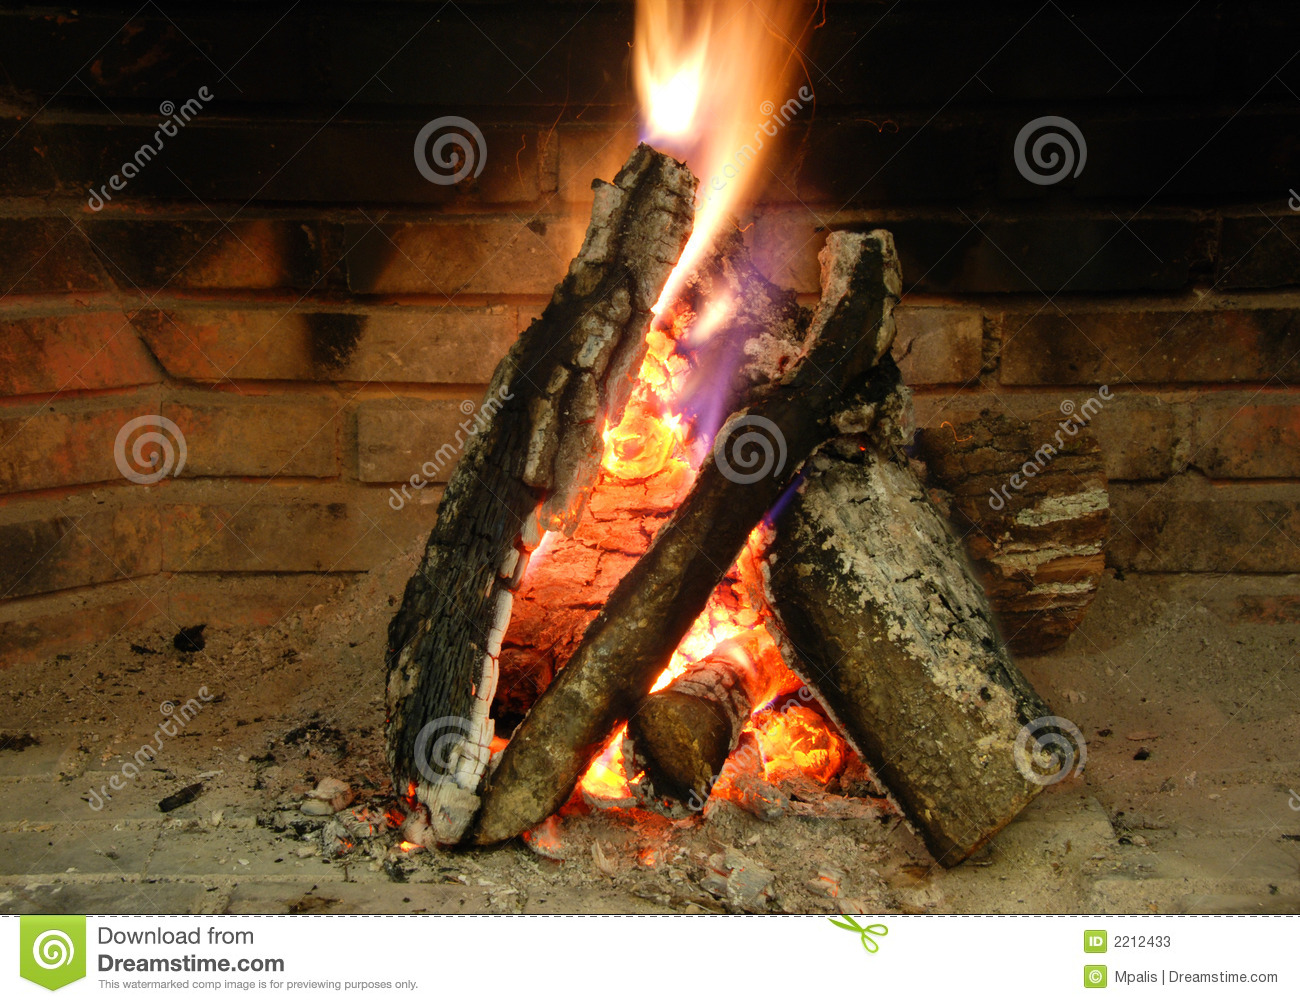 Fireplace with burning woods.